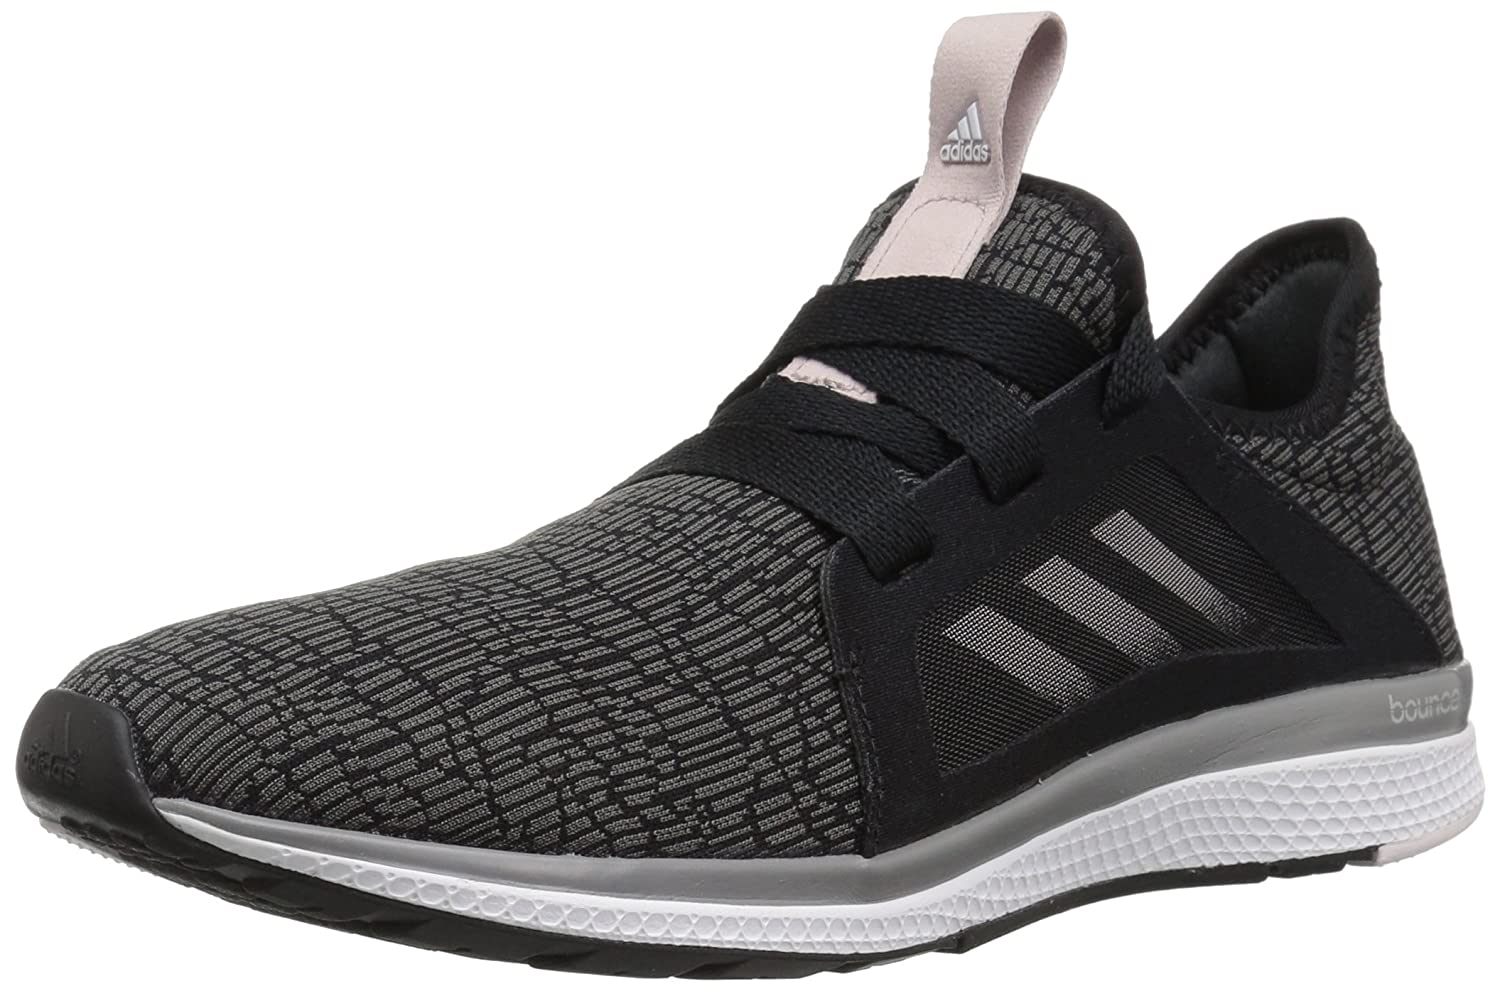 adidas Women's Edge Lux Running Shoe B072N93SQJ 9.5 B(M) US|Core Black, Vapour Grey Met.fabric, Orchid Tint S